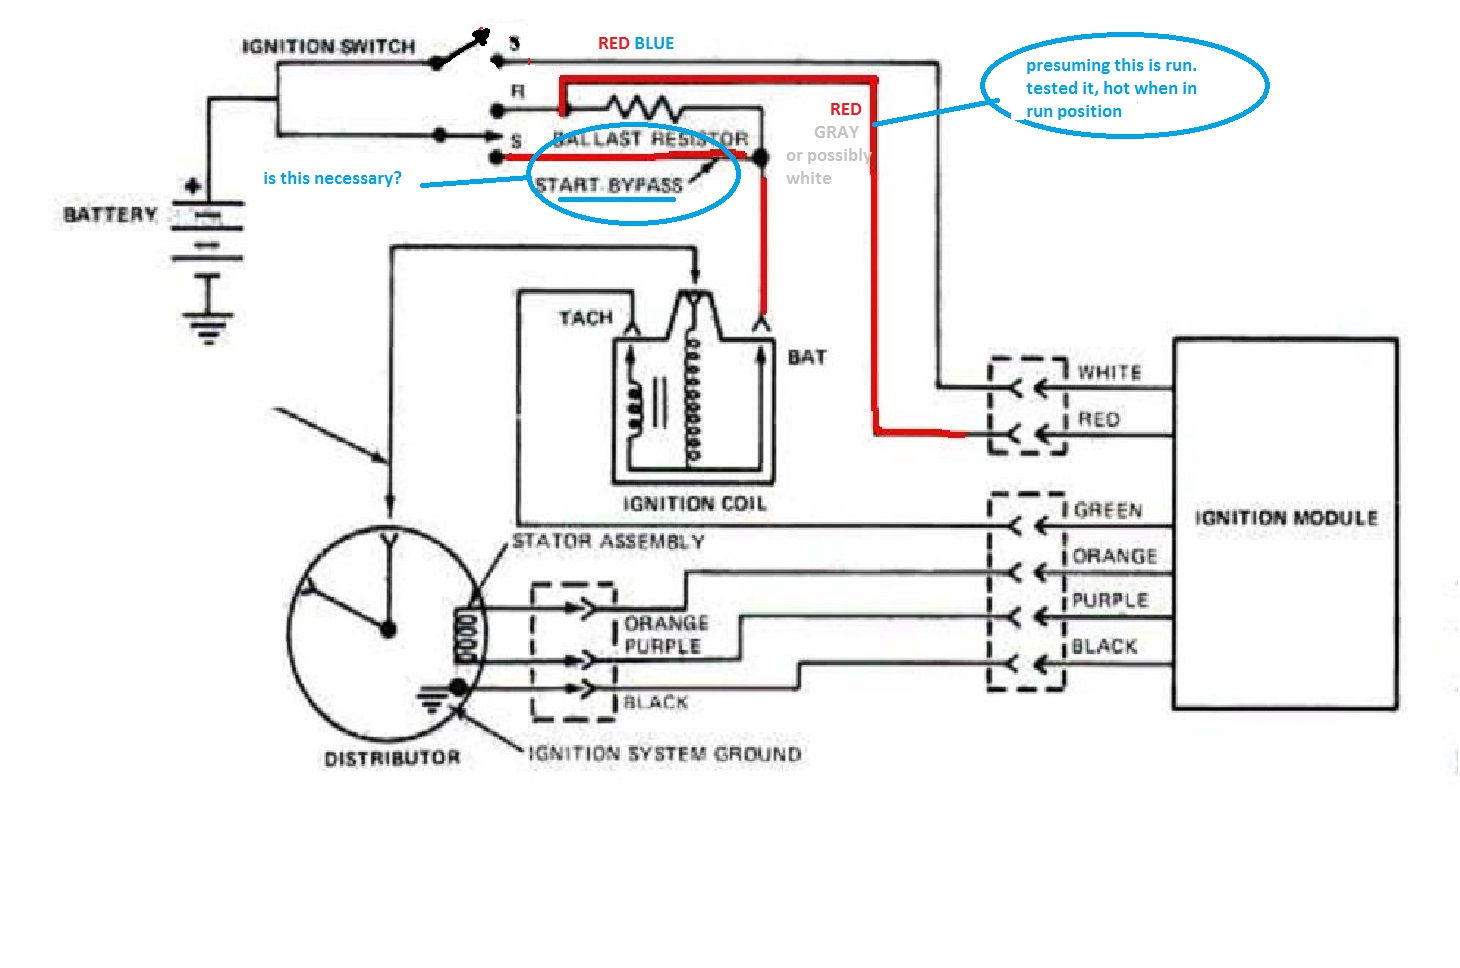 hight resolution of 87 ford ignition system wiring diagram wiring diagram view ford 351 ignition wiring